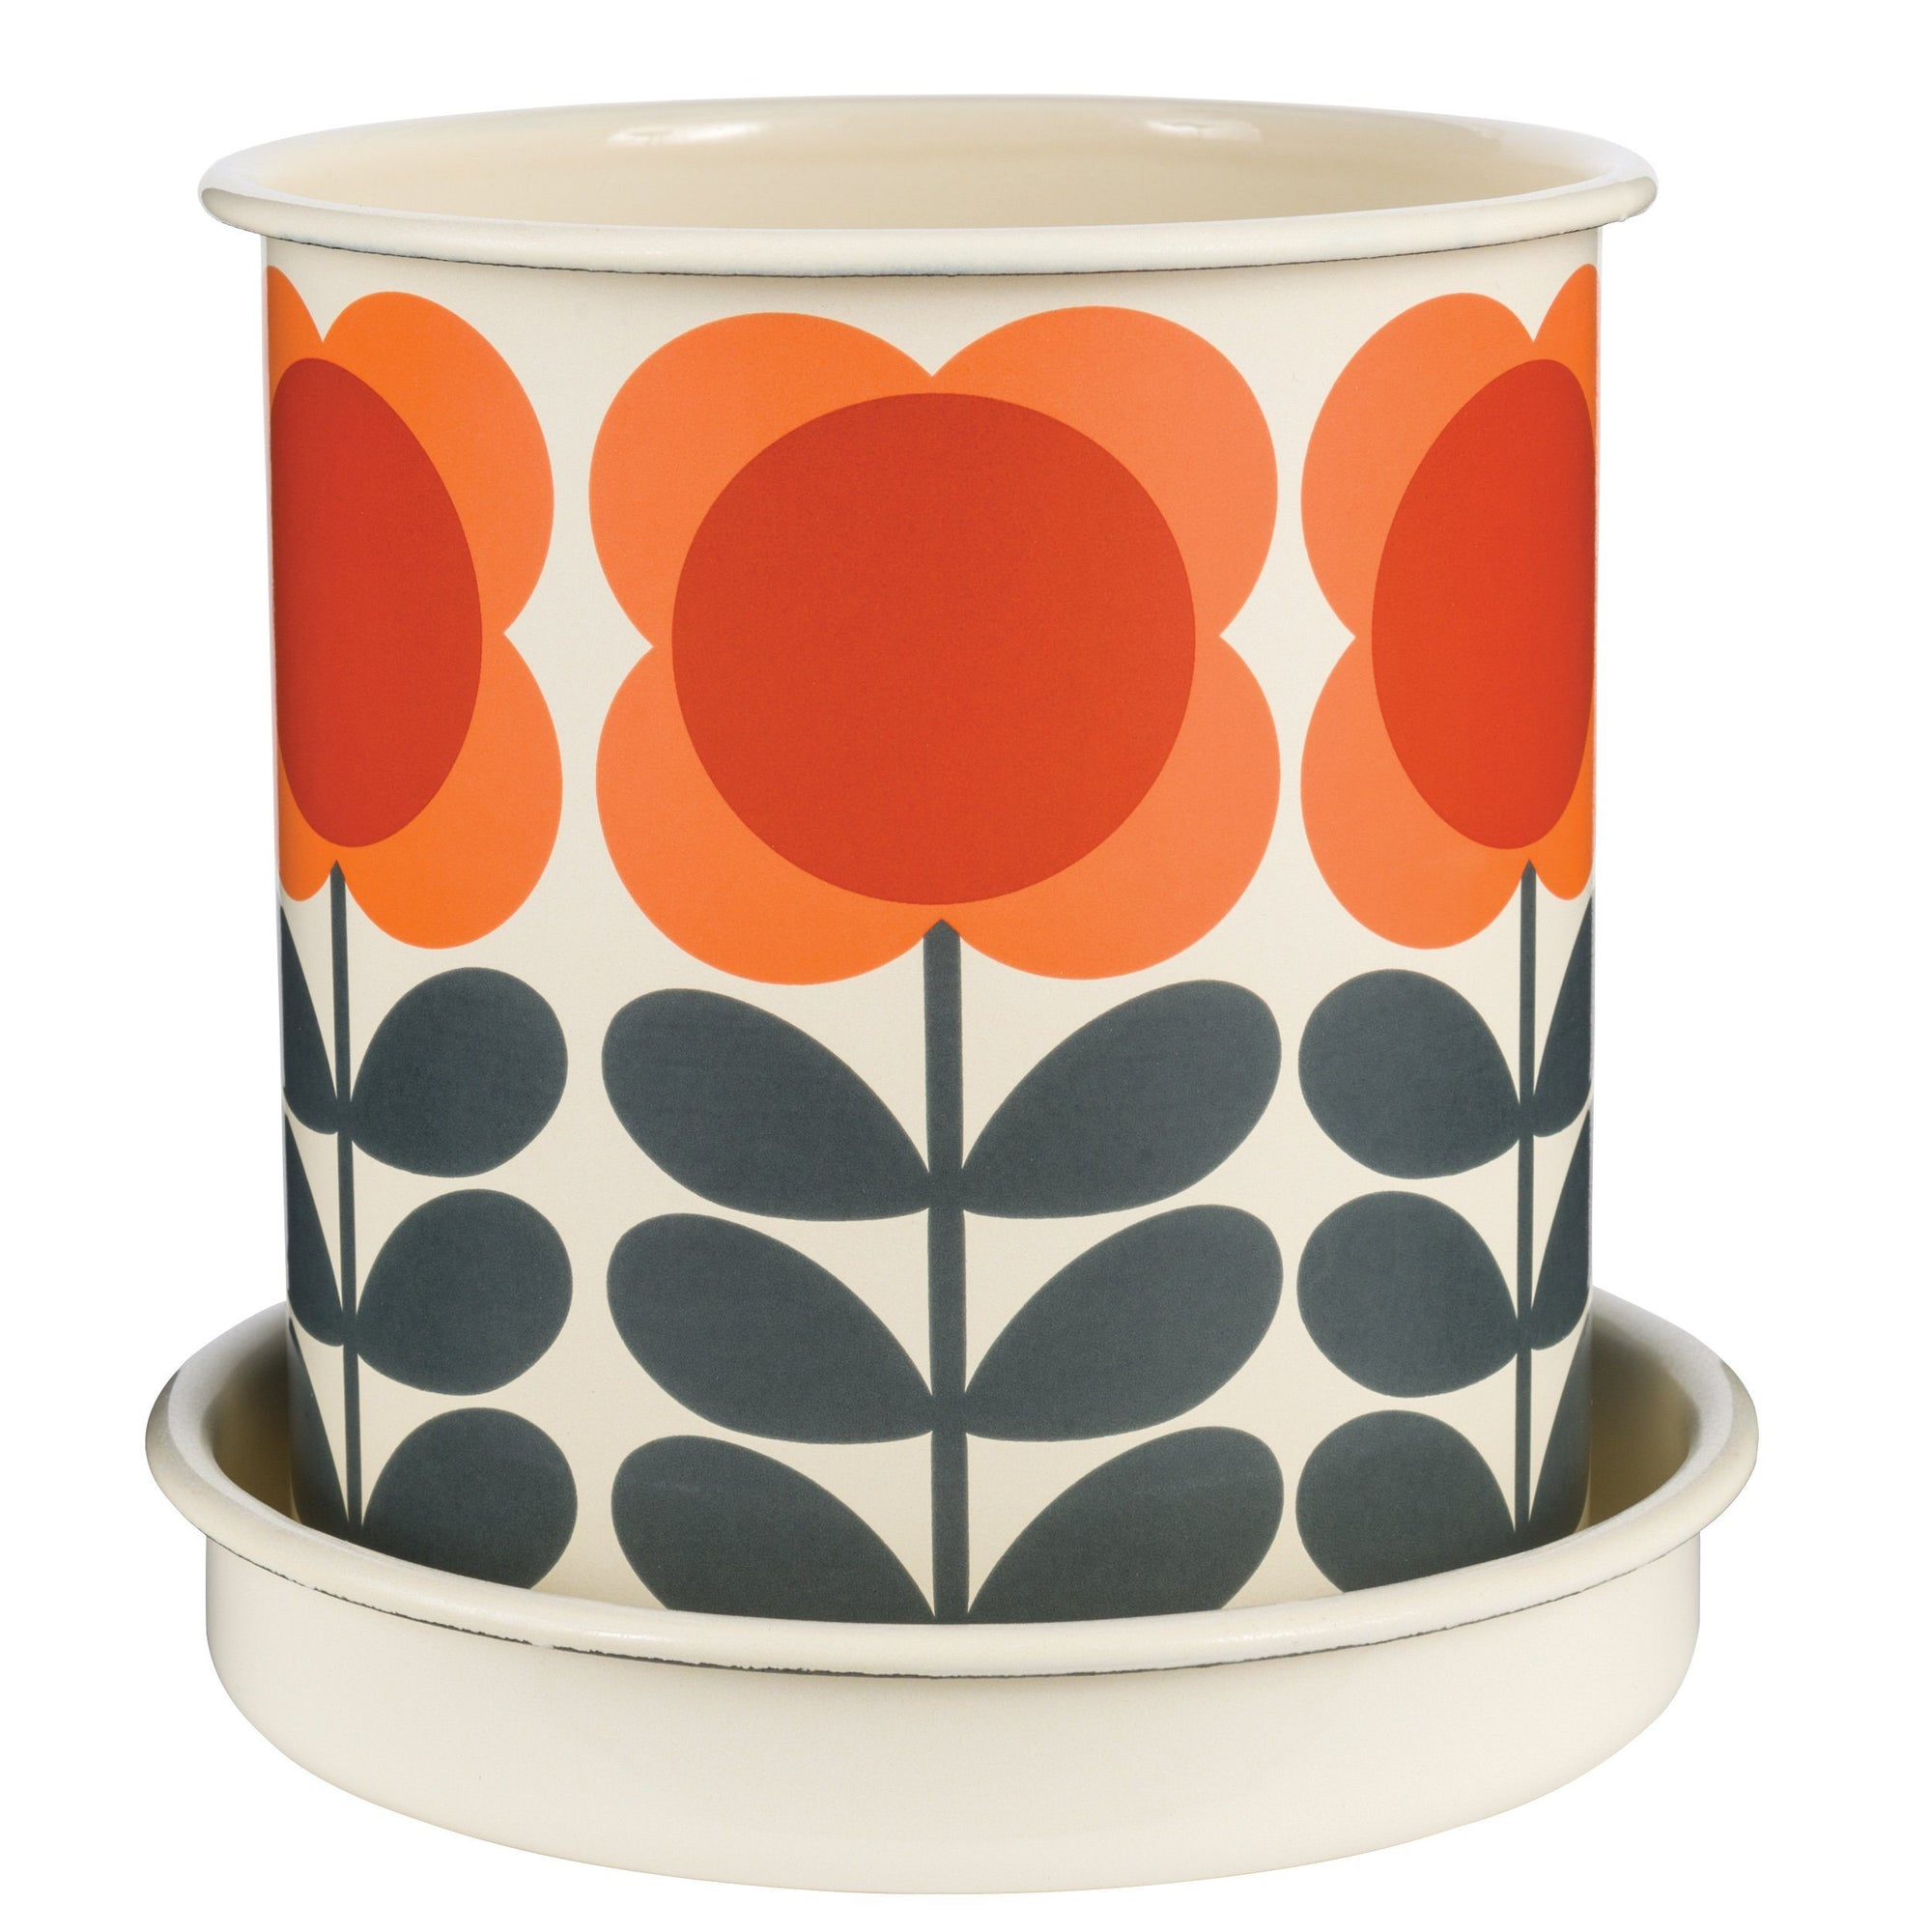 Big Spot Flower Stem Enamel Plant Pot Orange Orla Kiely - BouChic